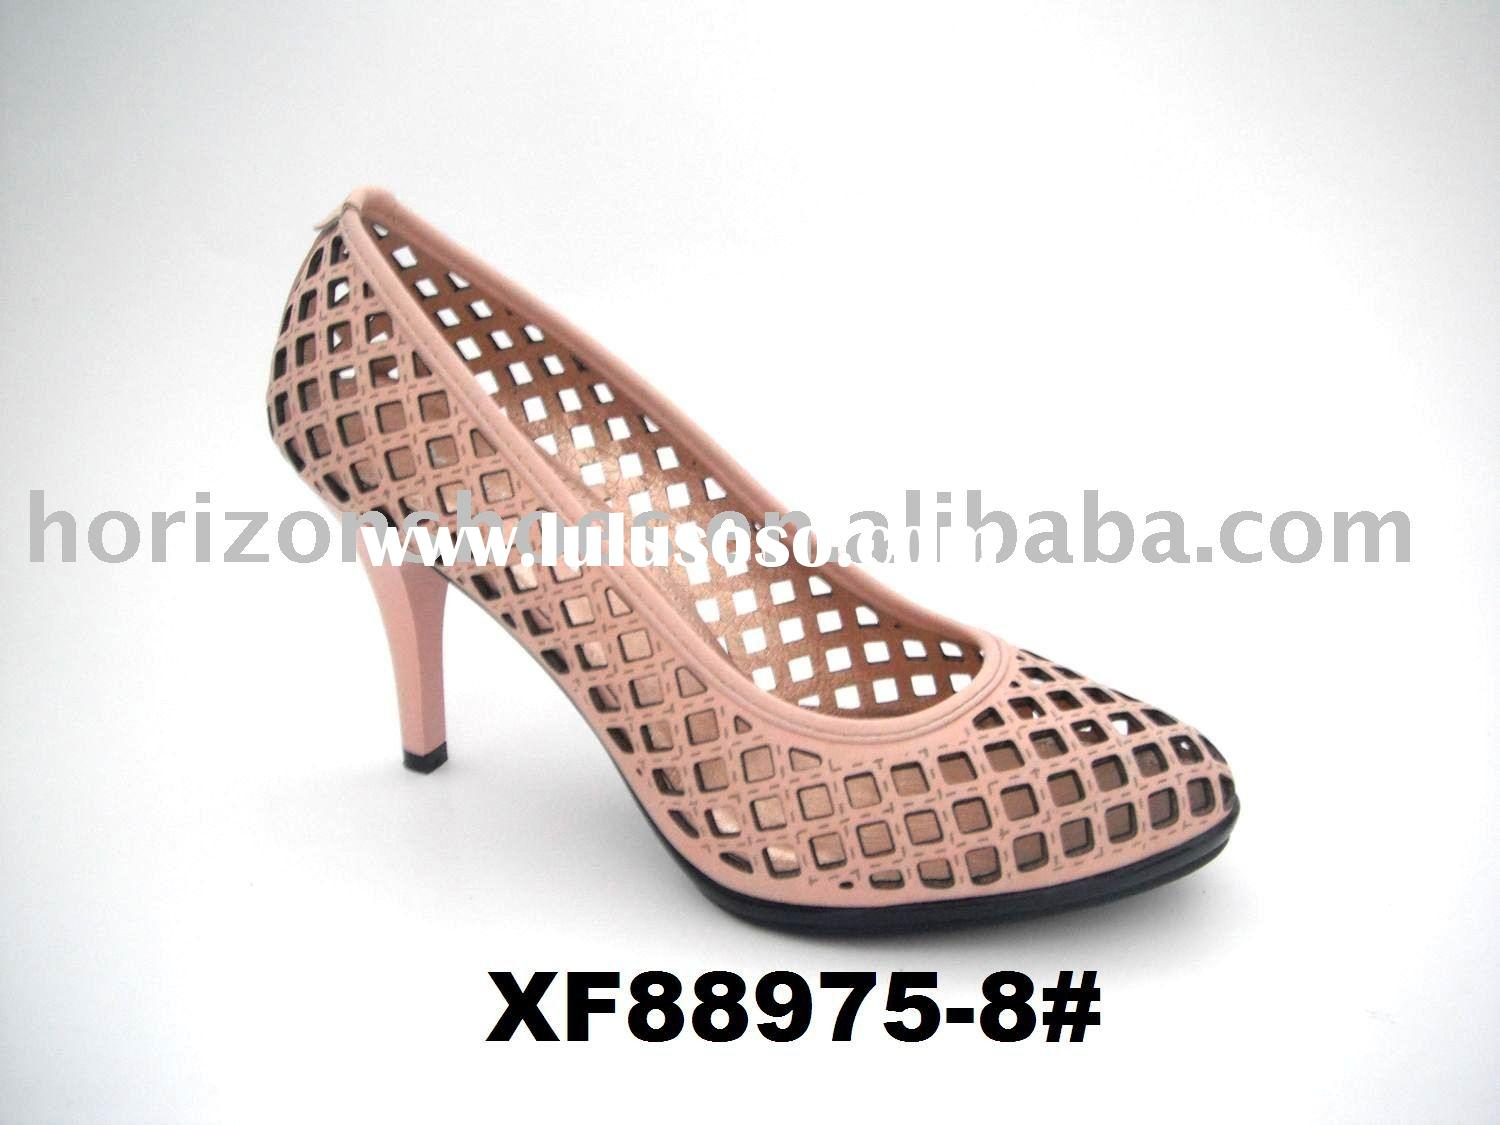 Hot!! 2011 Wholesale new style!! Ladies Fashion Shoes, see through design, XF88975-8#